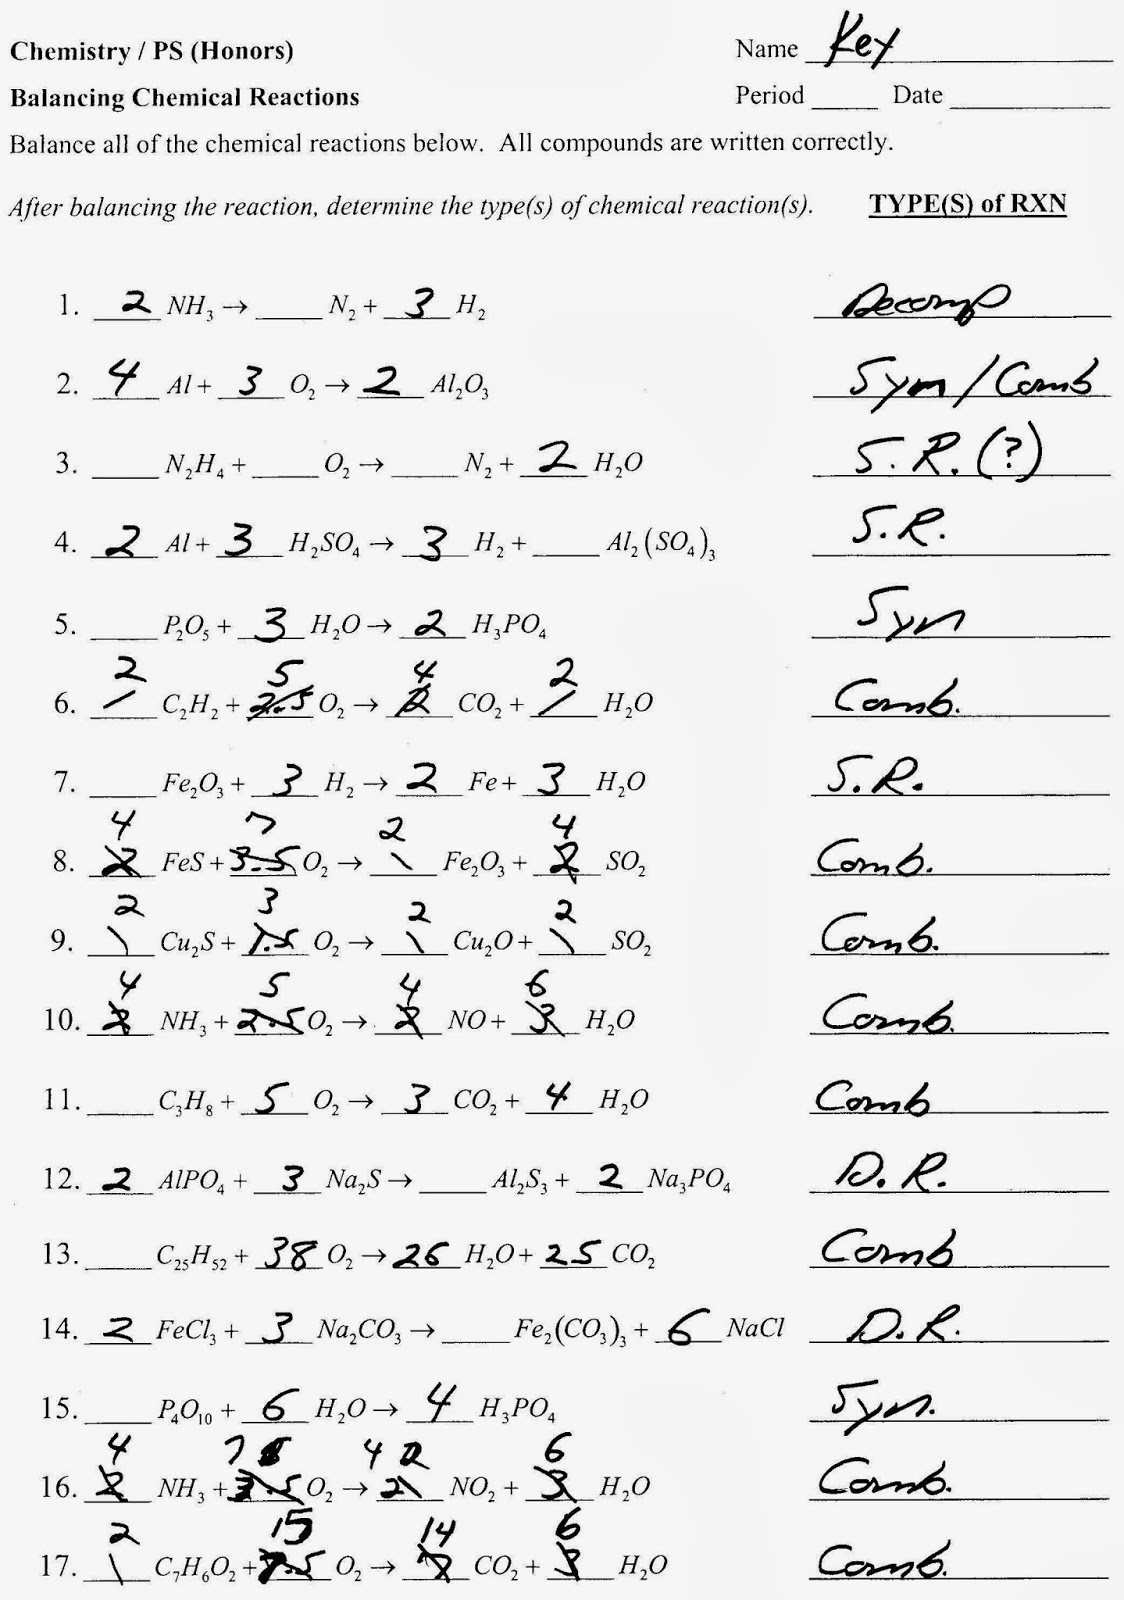 Aldiablosus  Stunning Balancing Chemical Equations Worksheets Balancing Chemical  With Fascinating Balancing Chemical Equations Worksheet Answer Key On Chemistry Double With Divine Indirect Object Pronouns Worksheet Also Five Senses Worksheets Preschool In Addition Beginners Spanish Worksheets And Free Worksheets Printable As Well As Complete Subject And Complete Predicate Worksheets Additionally Algebra  Lessons And Worksheets From Letstalkhiphopus With Aldiablosus  Fascinating Balancing Chemical Equations Worksheets Balancing Chemical  With Divine Balancing Chemical Equations Worksheet Answer Key On Chemistry Double And Stunning Indirect Object Pronouns Worksheet Also Five Senses Worksheets Preschool In Addition Beginners Spanish Worksheets From Letstalkhiphopus